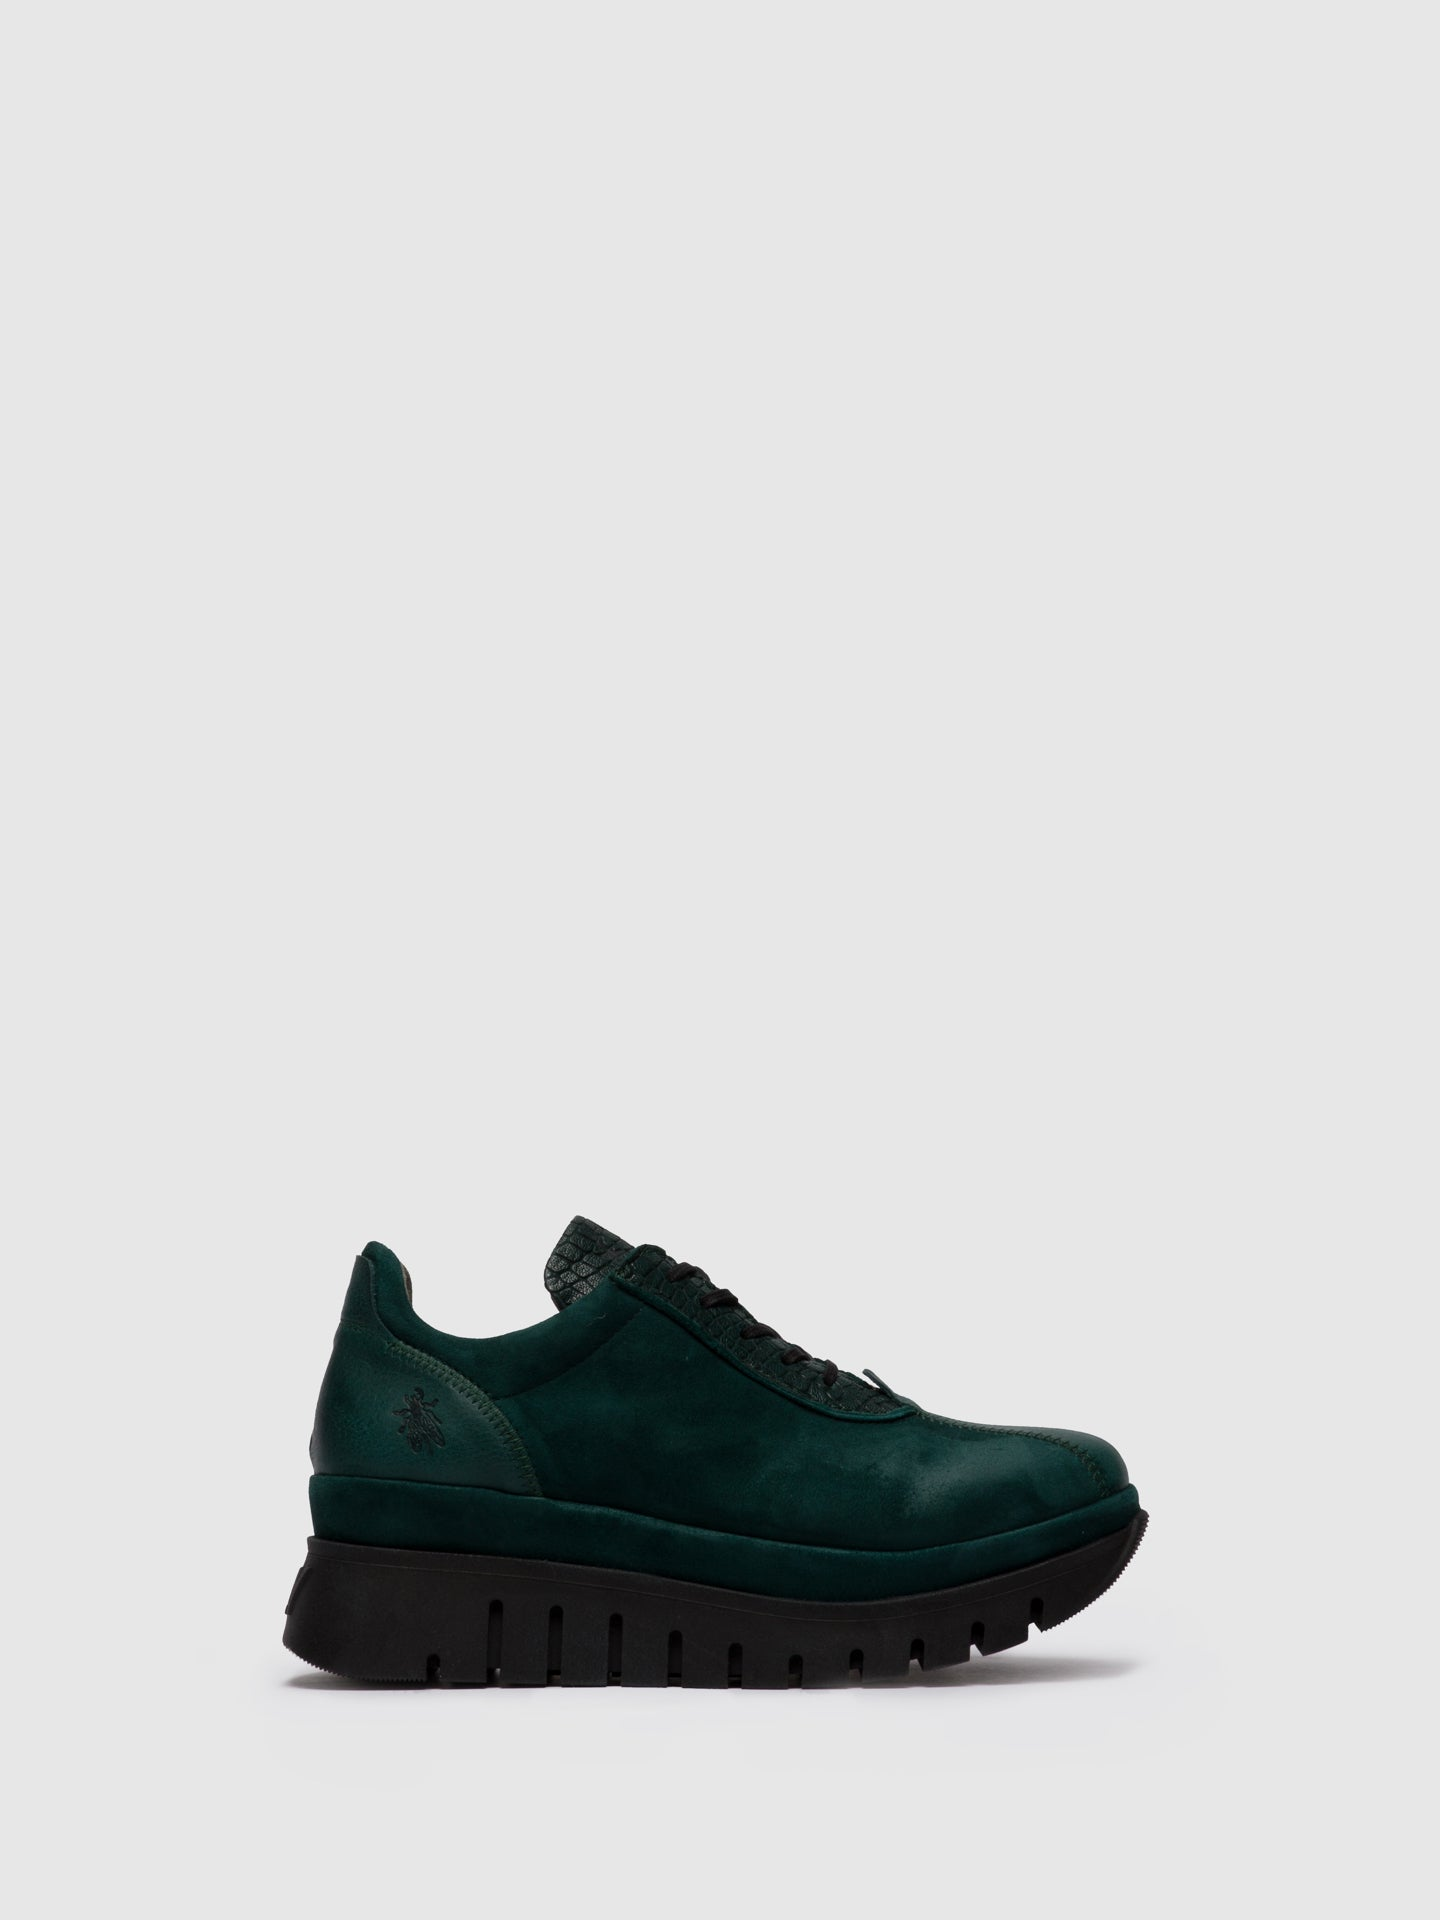 Fly London Lace-up Trainers BESI203FLY VERONA/CROCO/SILKY GREEN FOREST